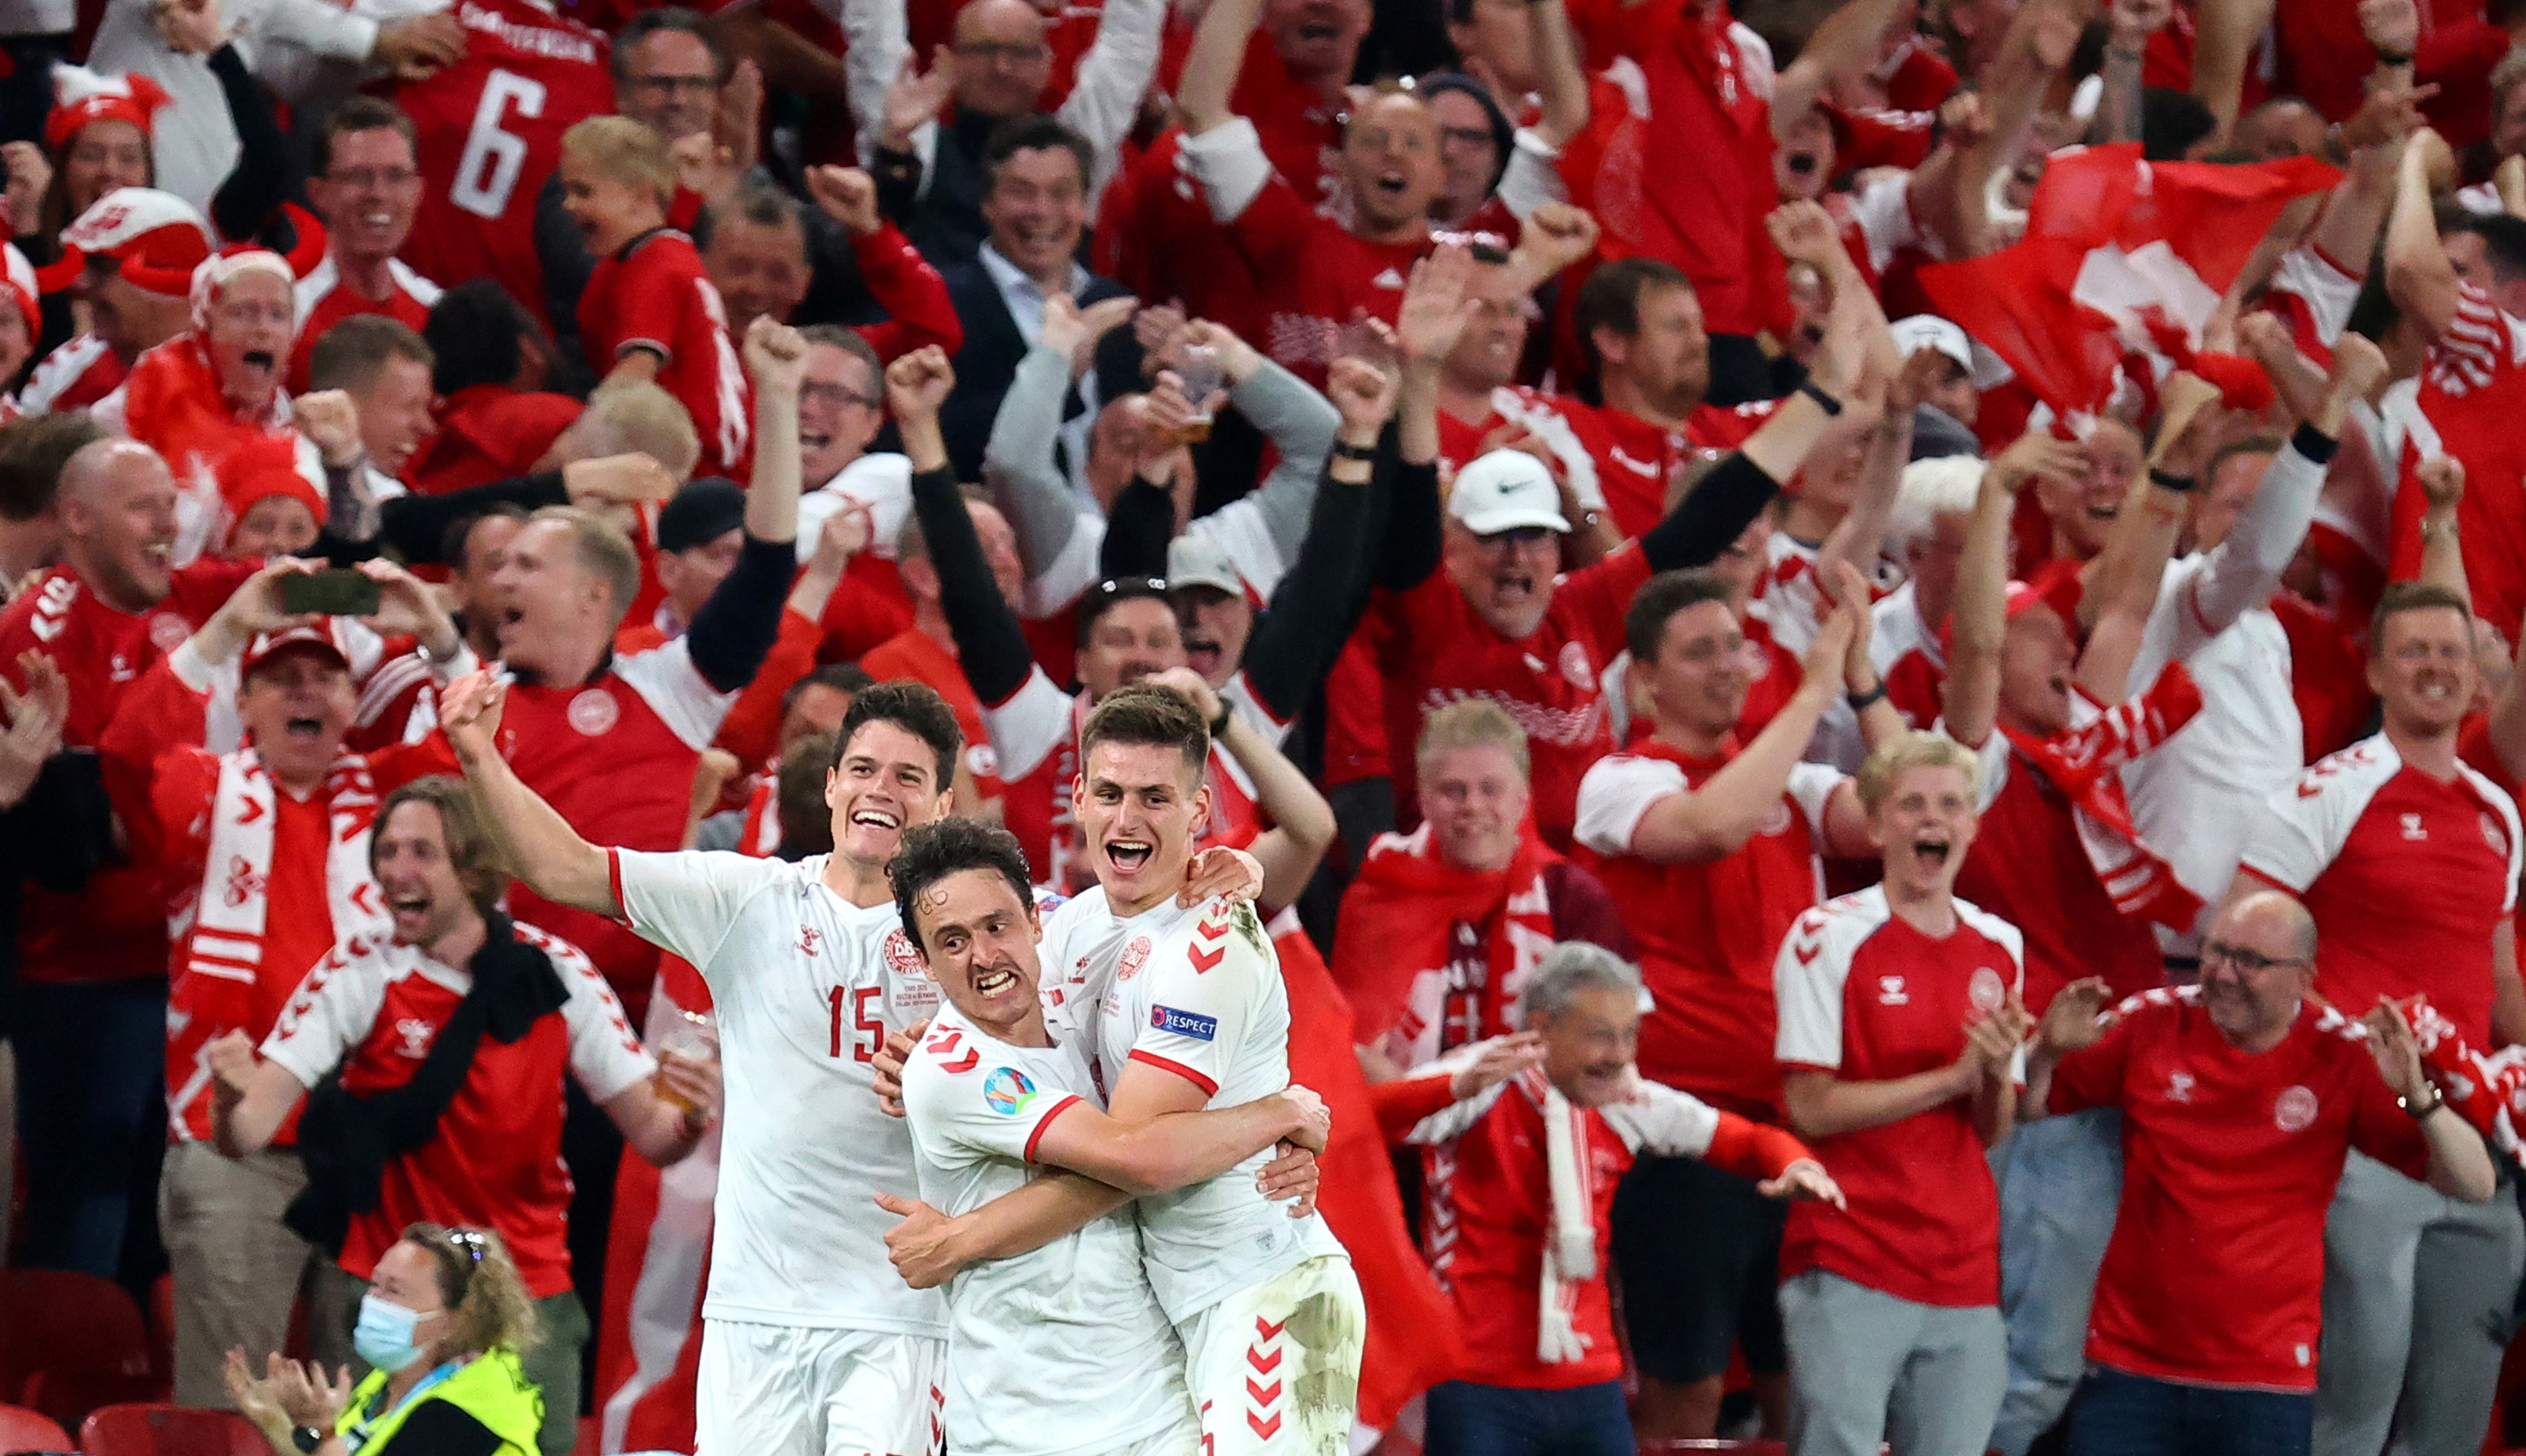 Denmark's Joakim Maehle celebrates scoring their fourth goal with Thomas Delaney and Christian Norgaard against Russia during Euro 2020 at Parken Stadium, Copenhagen, Denmark, June 21, 2021. Pool via REUTERS/Wolfgang Rattay